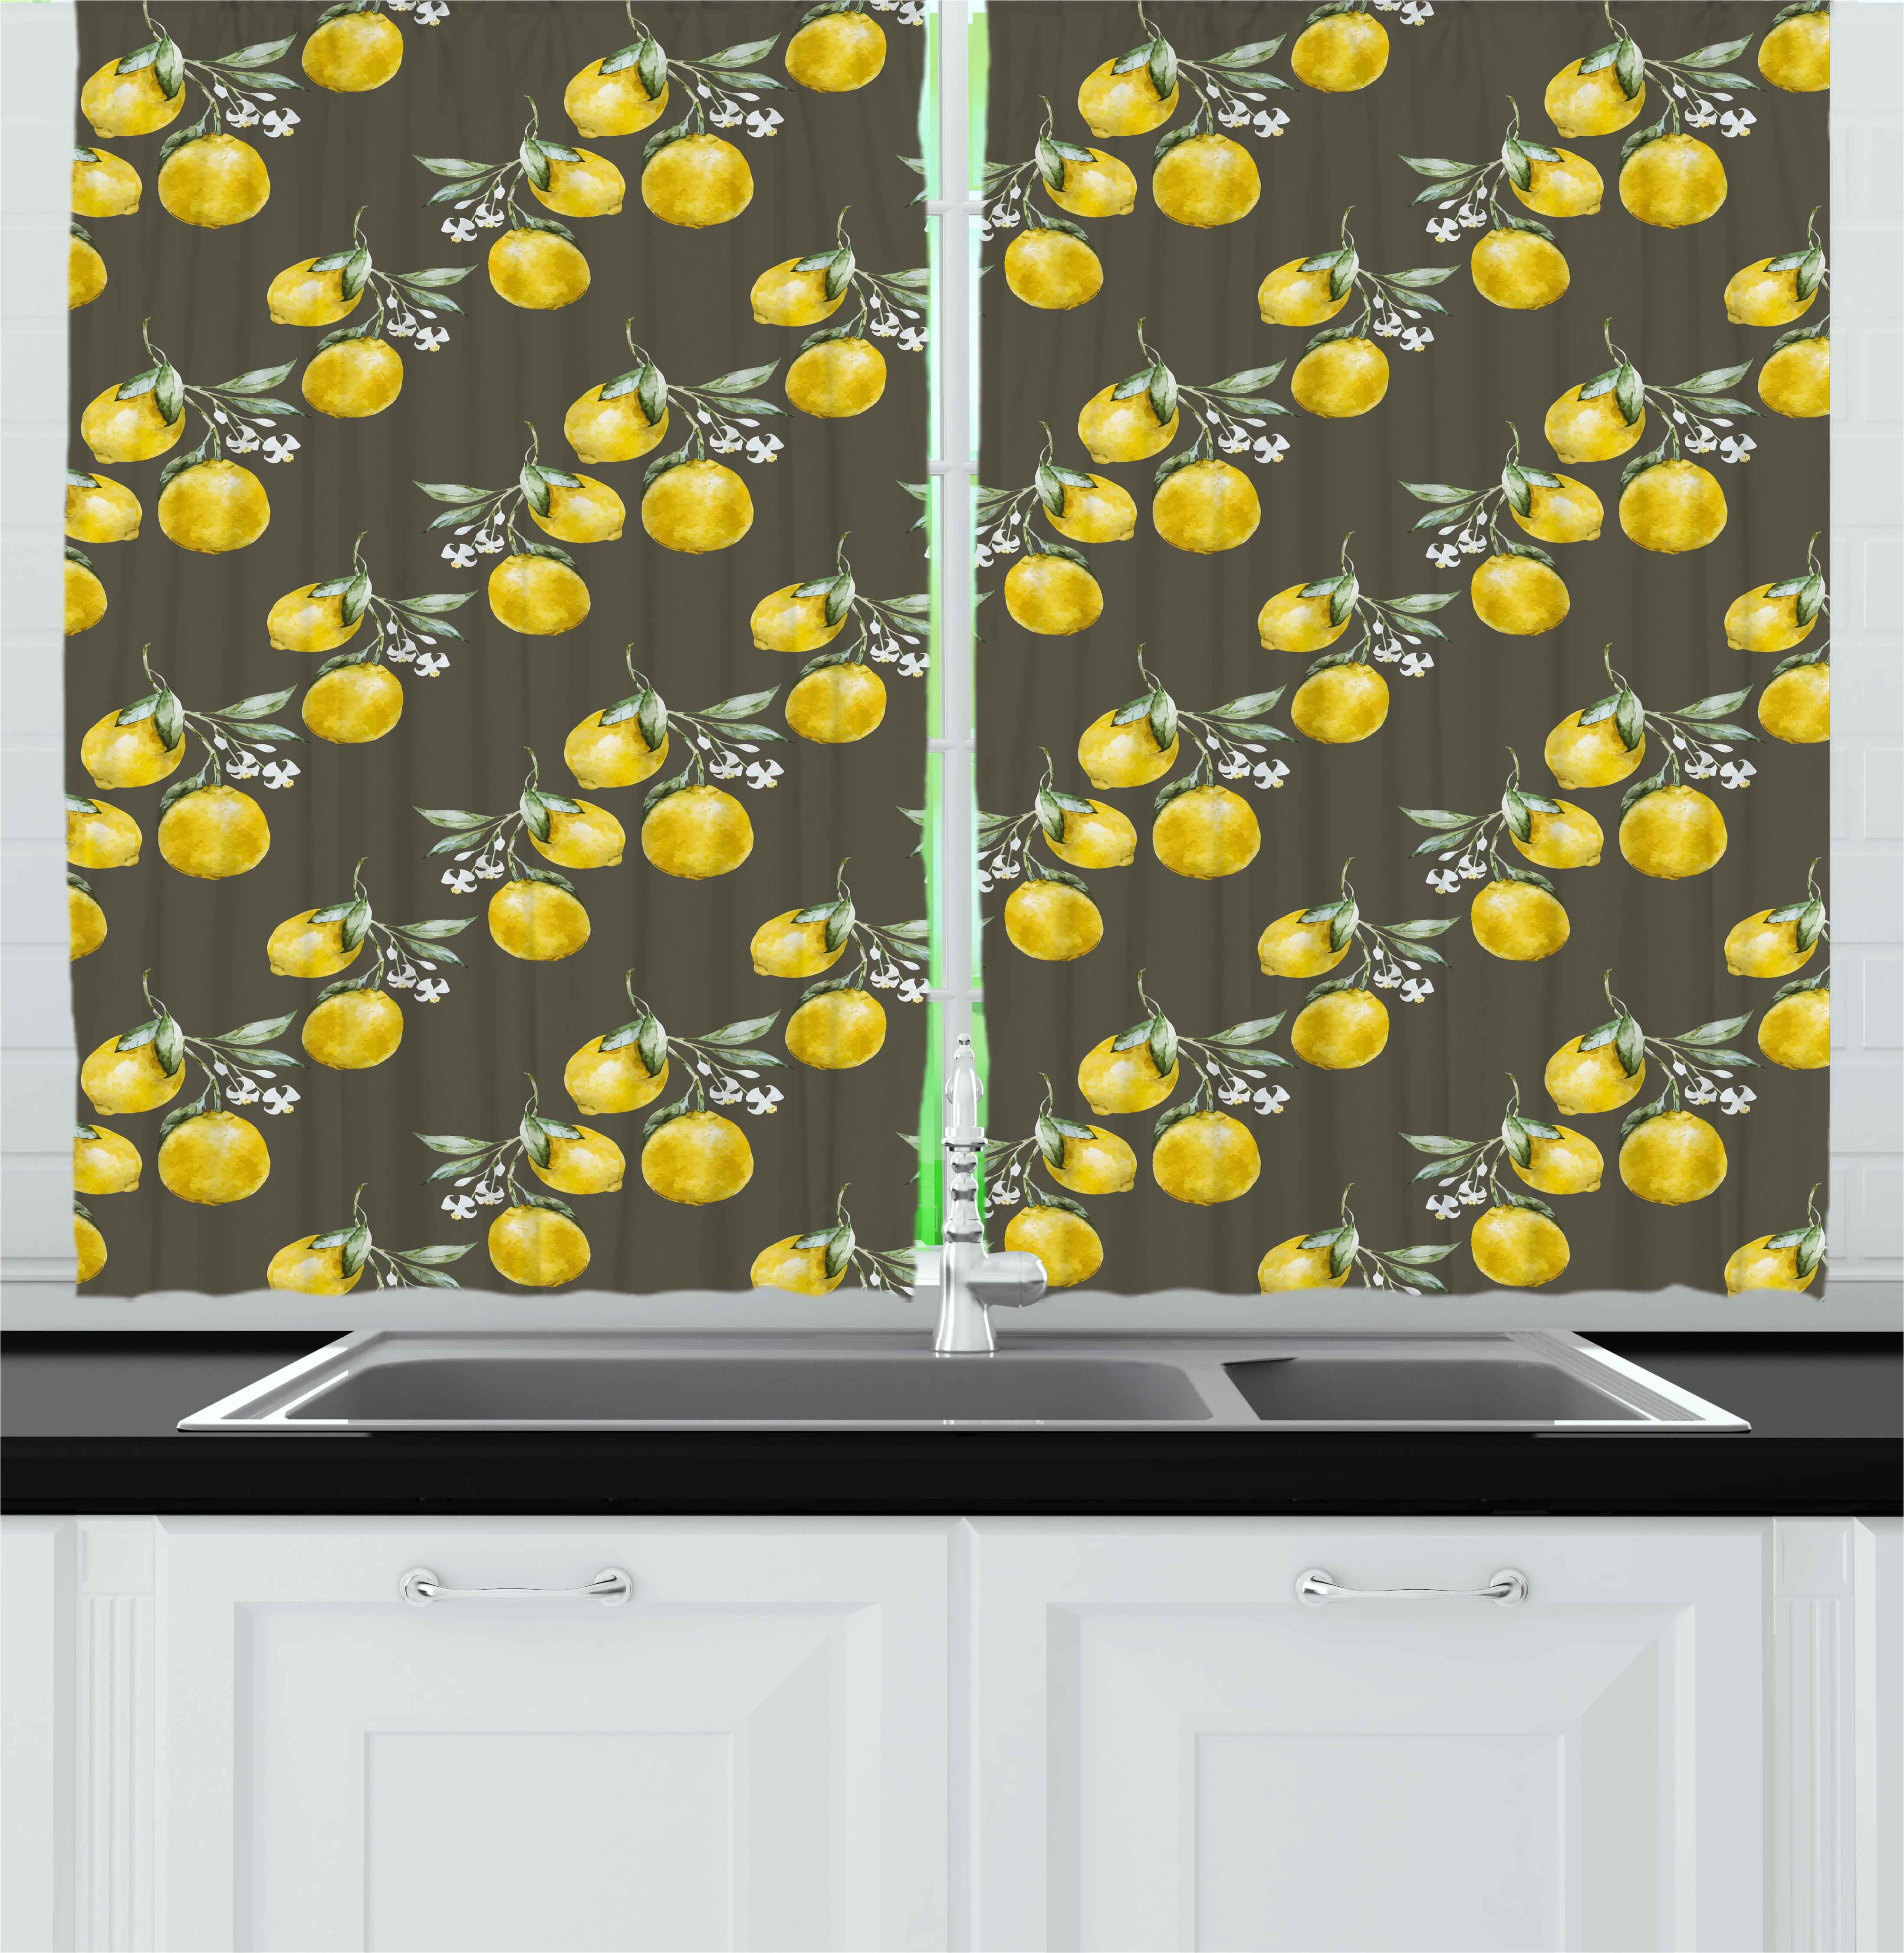 Lemon Green Curtains Floral Curtains 2 Panels Set Lemon Branches With Petals Growth Essence Nature Themed Artsy Print Window Drapes For Living Room Bedroom 55w X 39l